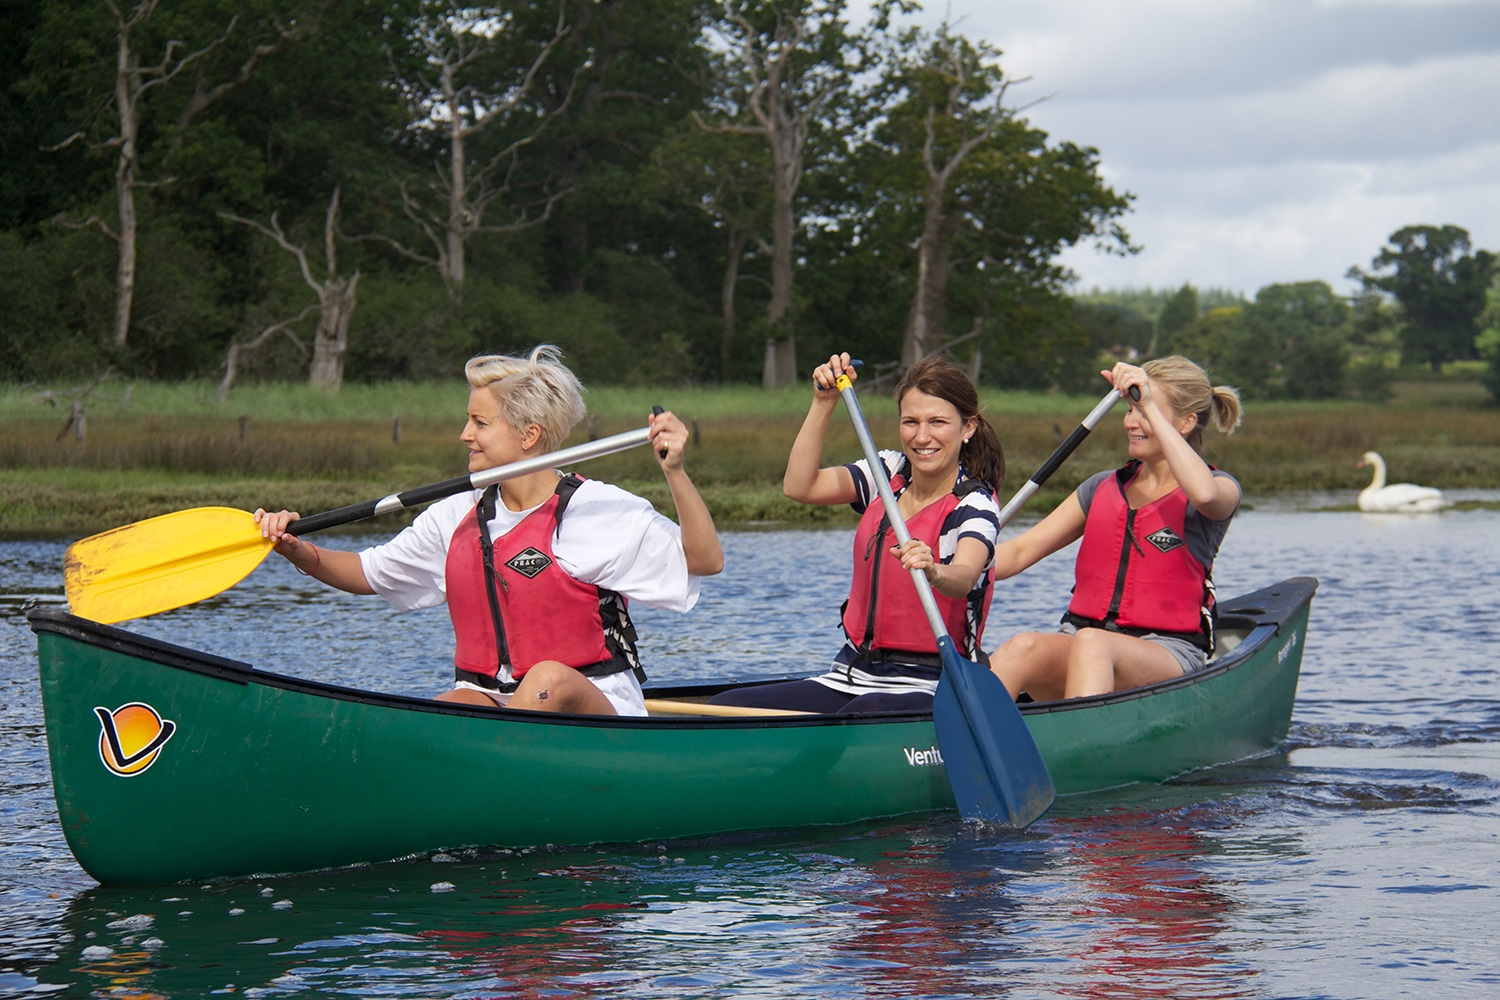 A group of ladies canoeing after looking for fun activities for adults in The New Forest.